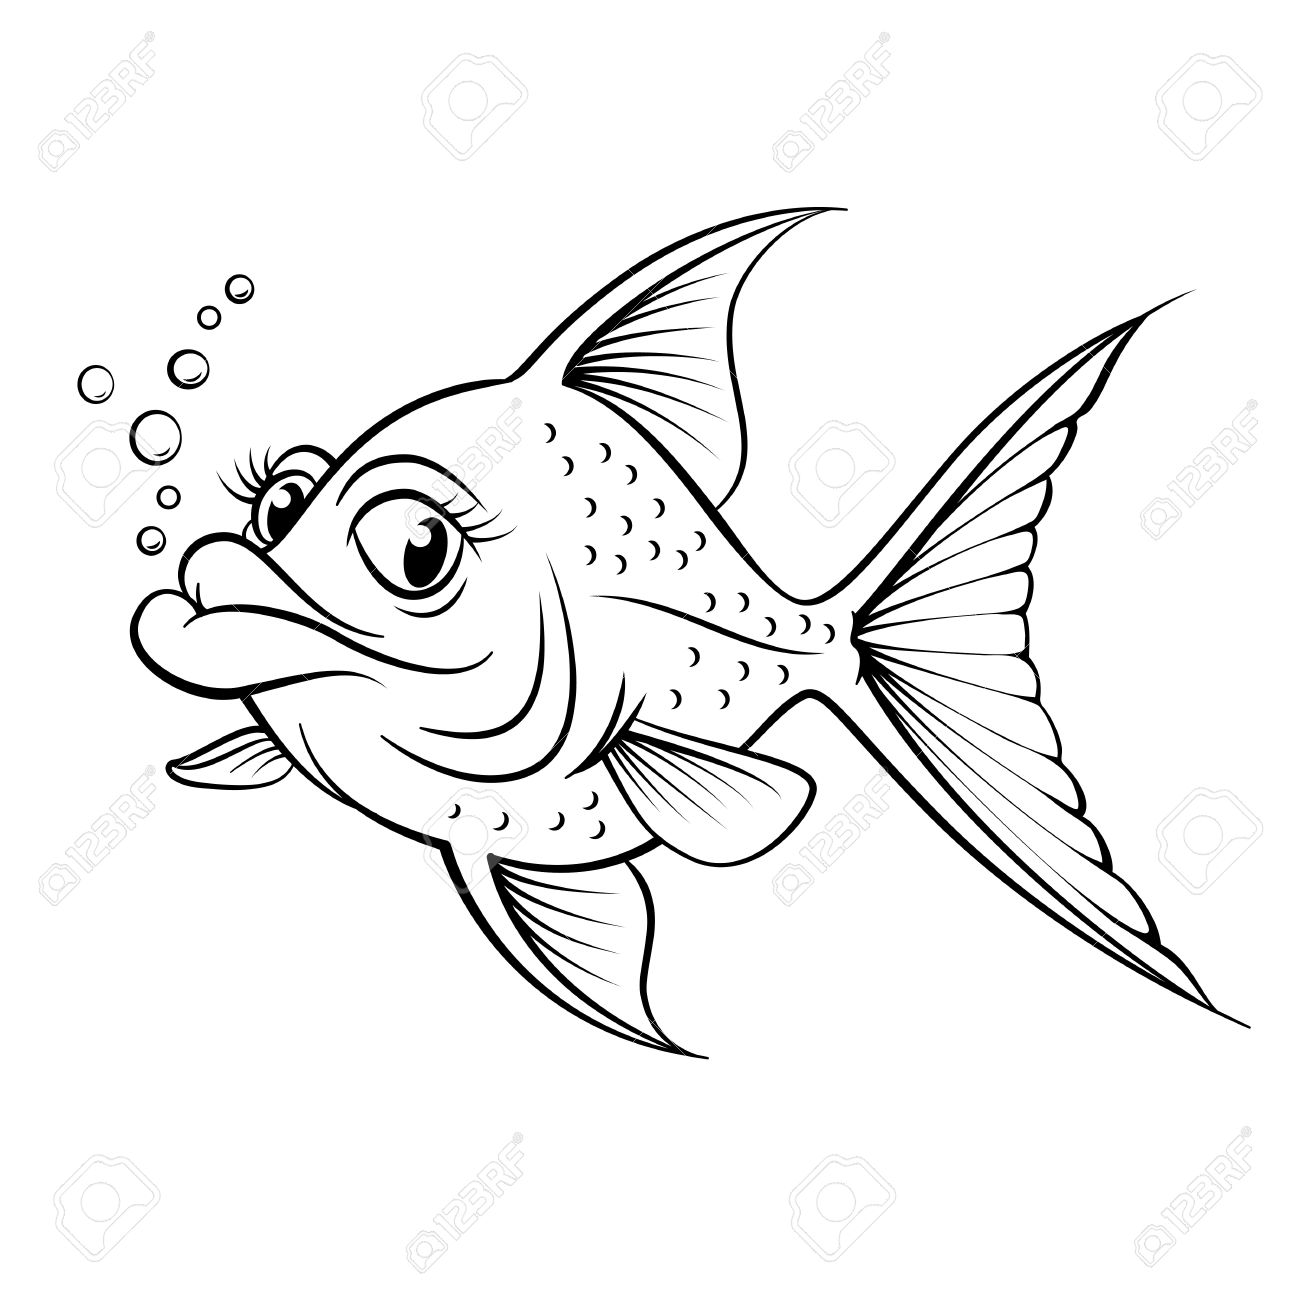 Cartoon drawing fish illustration for design on white background stock vector 14562064